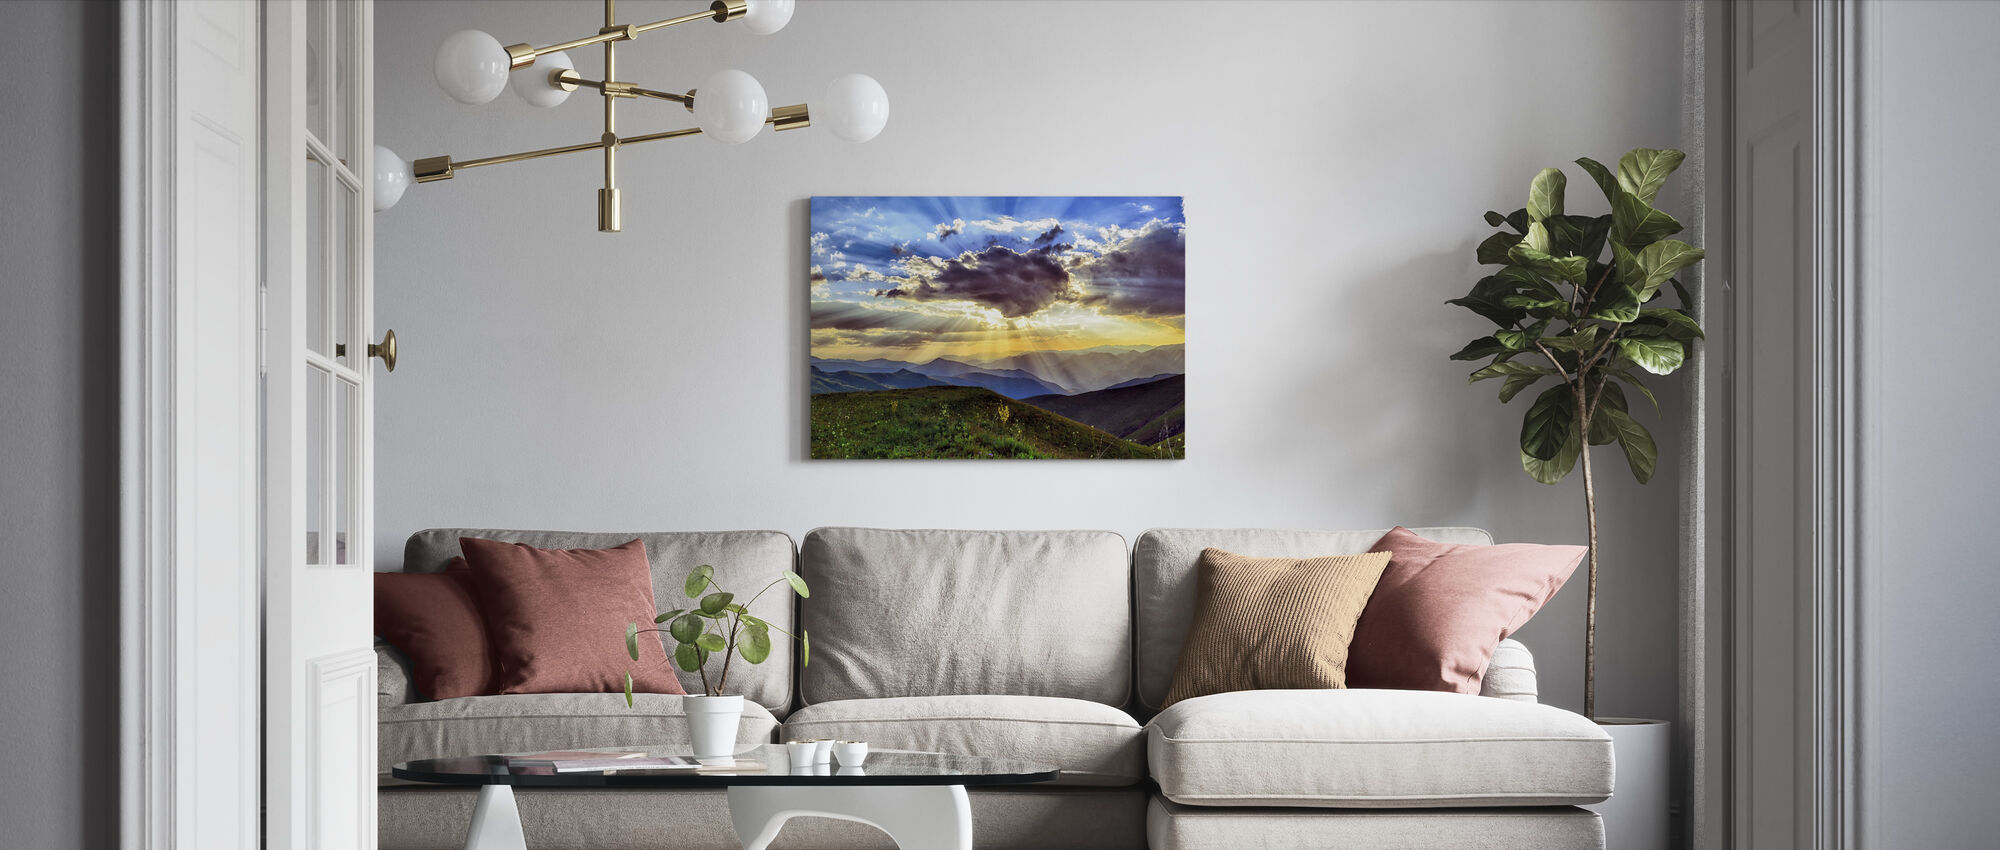 Highland Sunset - Canvas print - Living Room